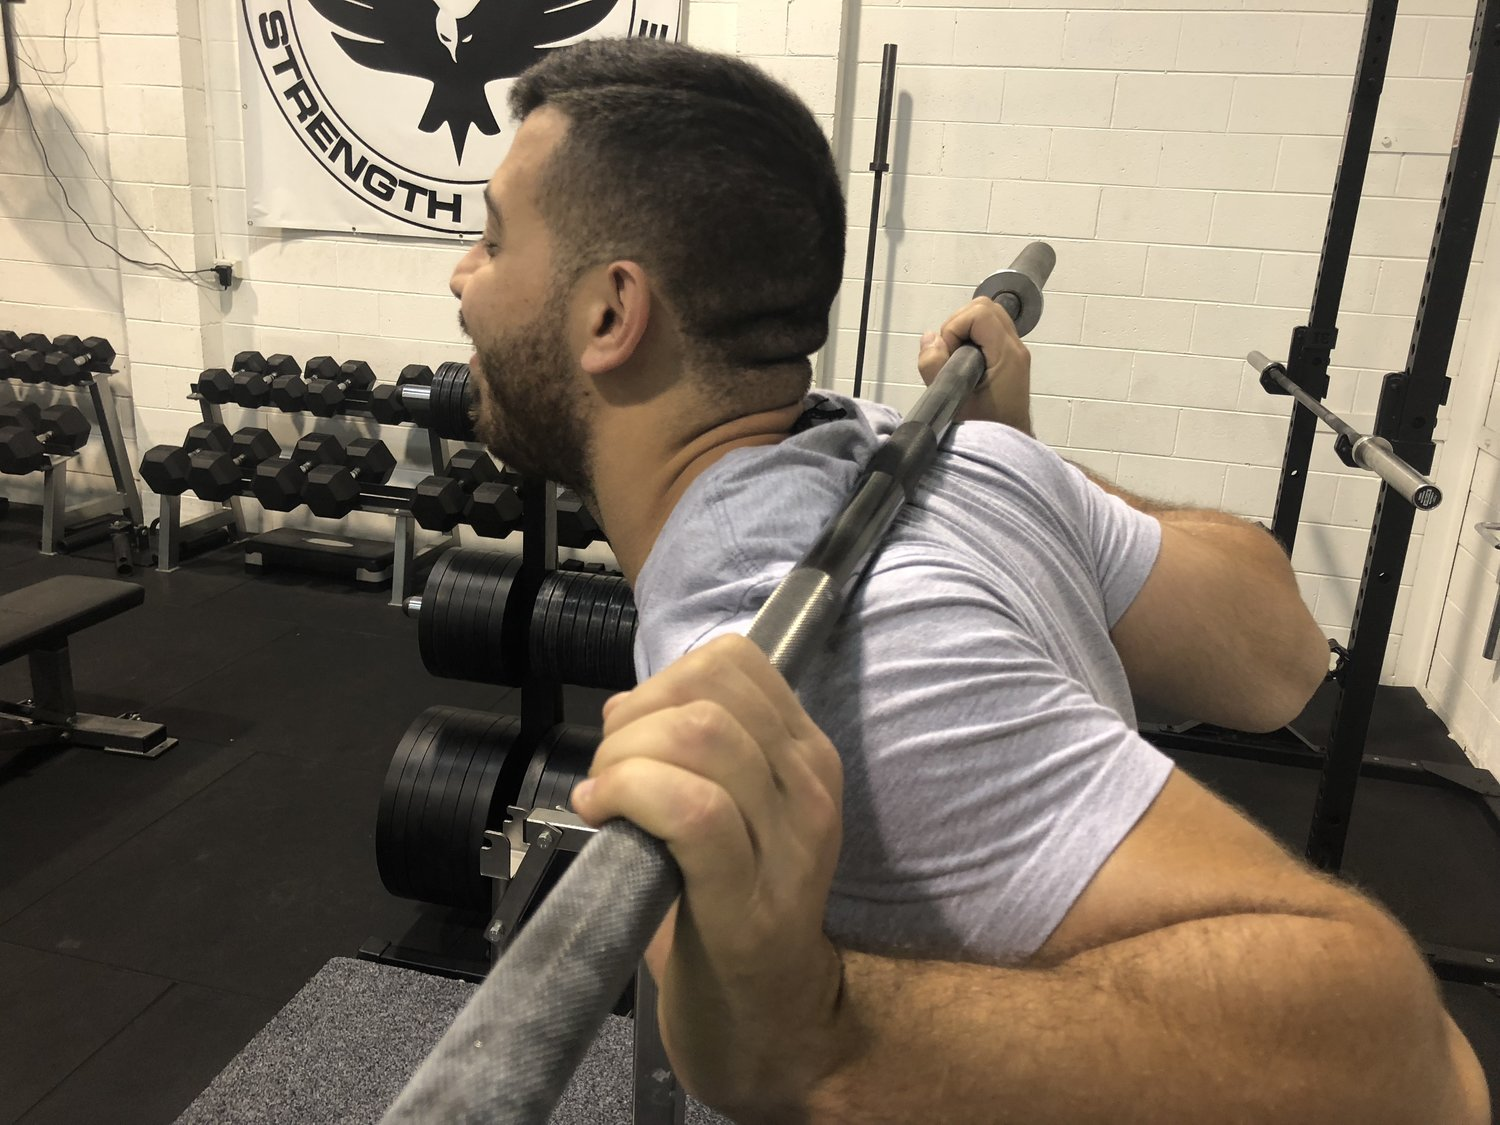 Thoracic Outlet Syndrome Low Bar Squats And Radial Nerve